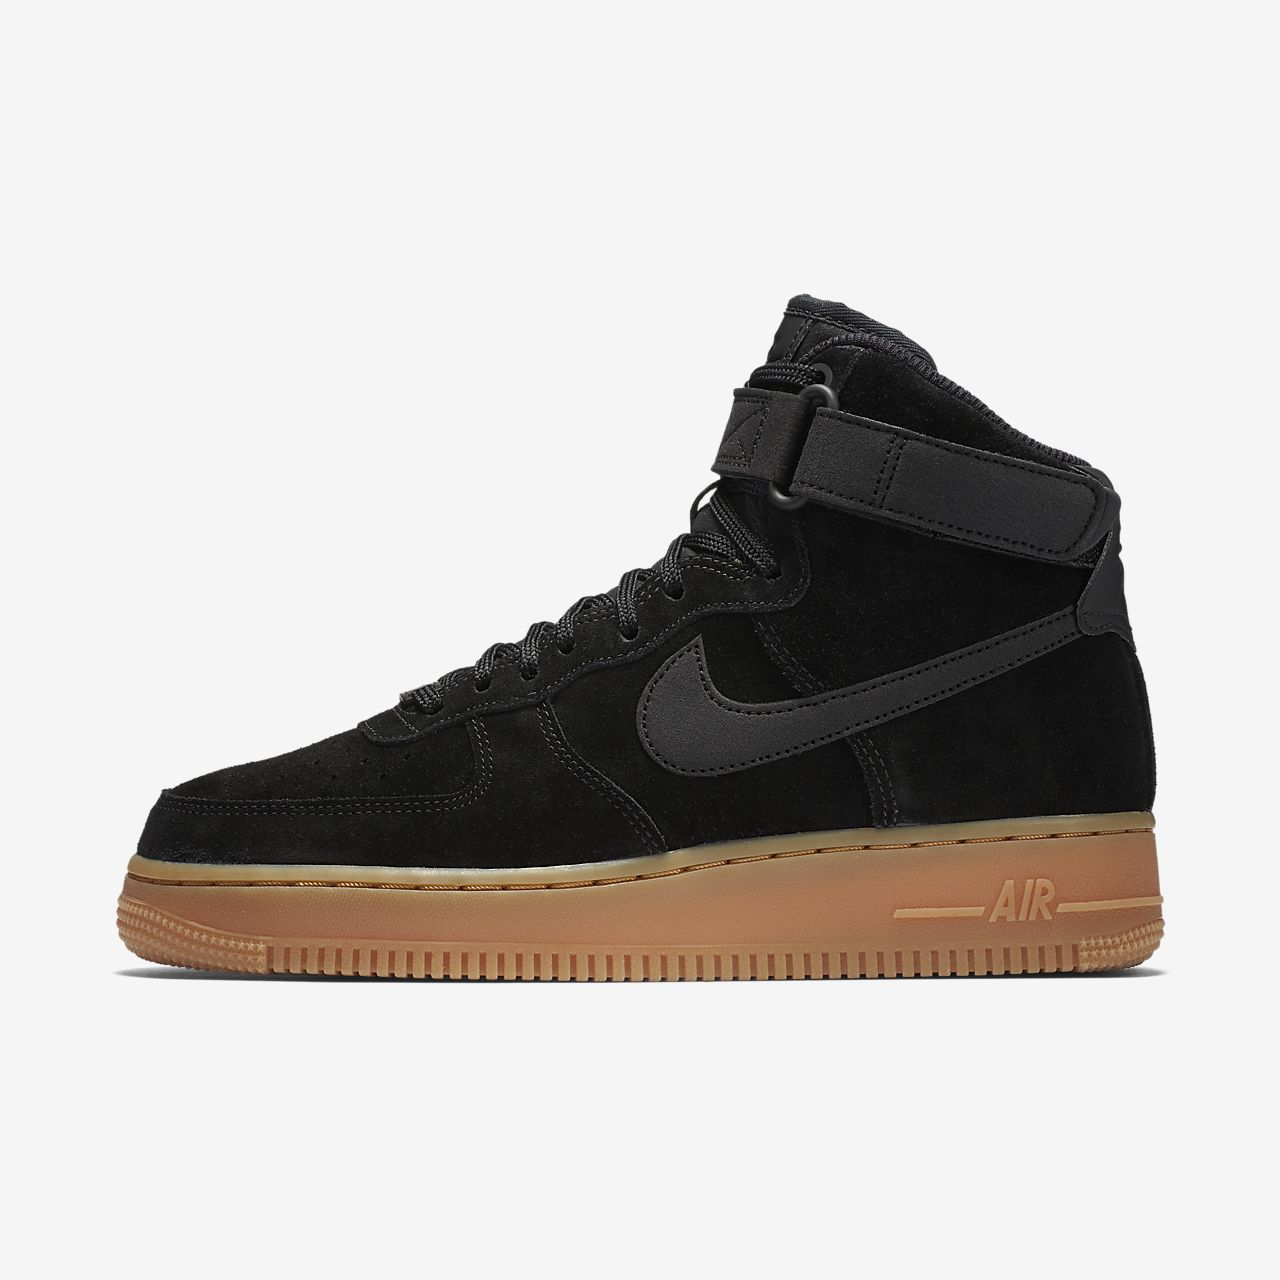 nike air force 1 high womens price nz